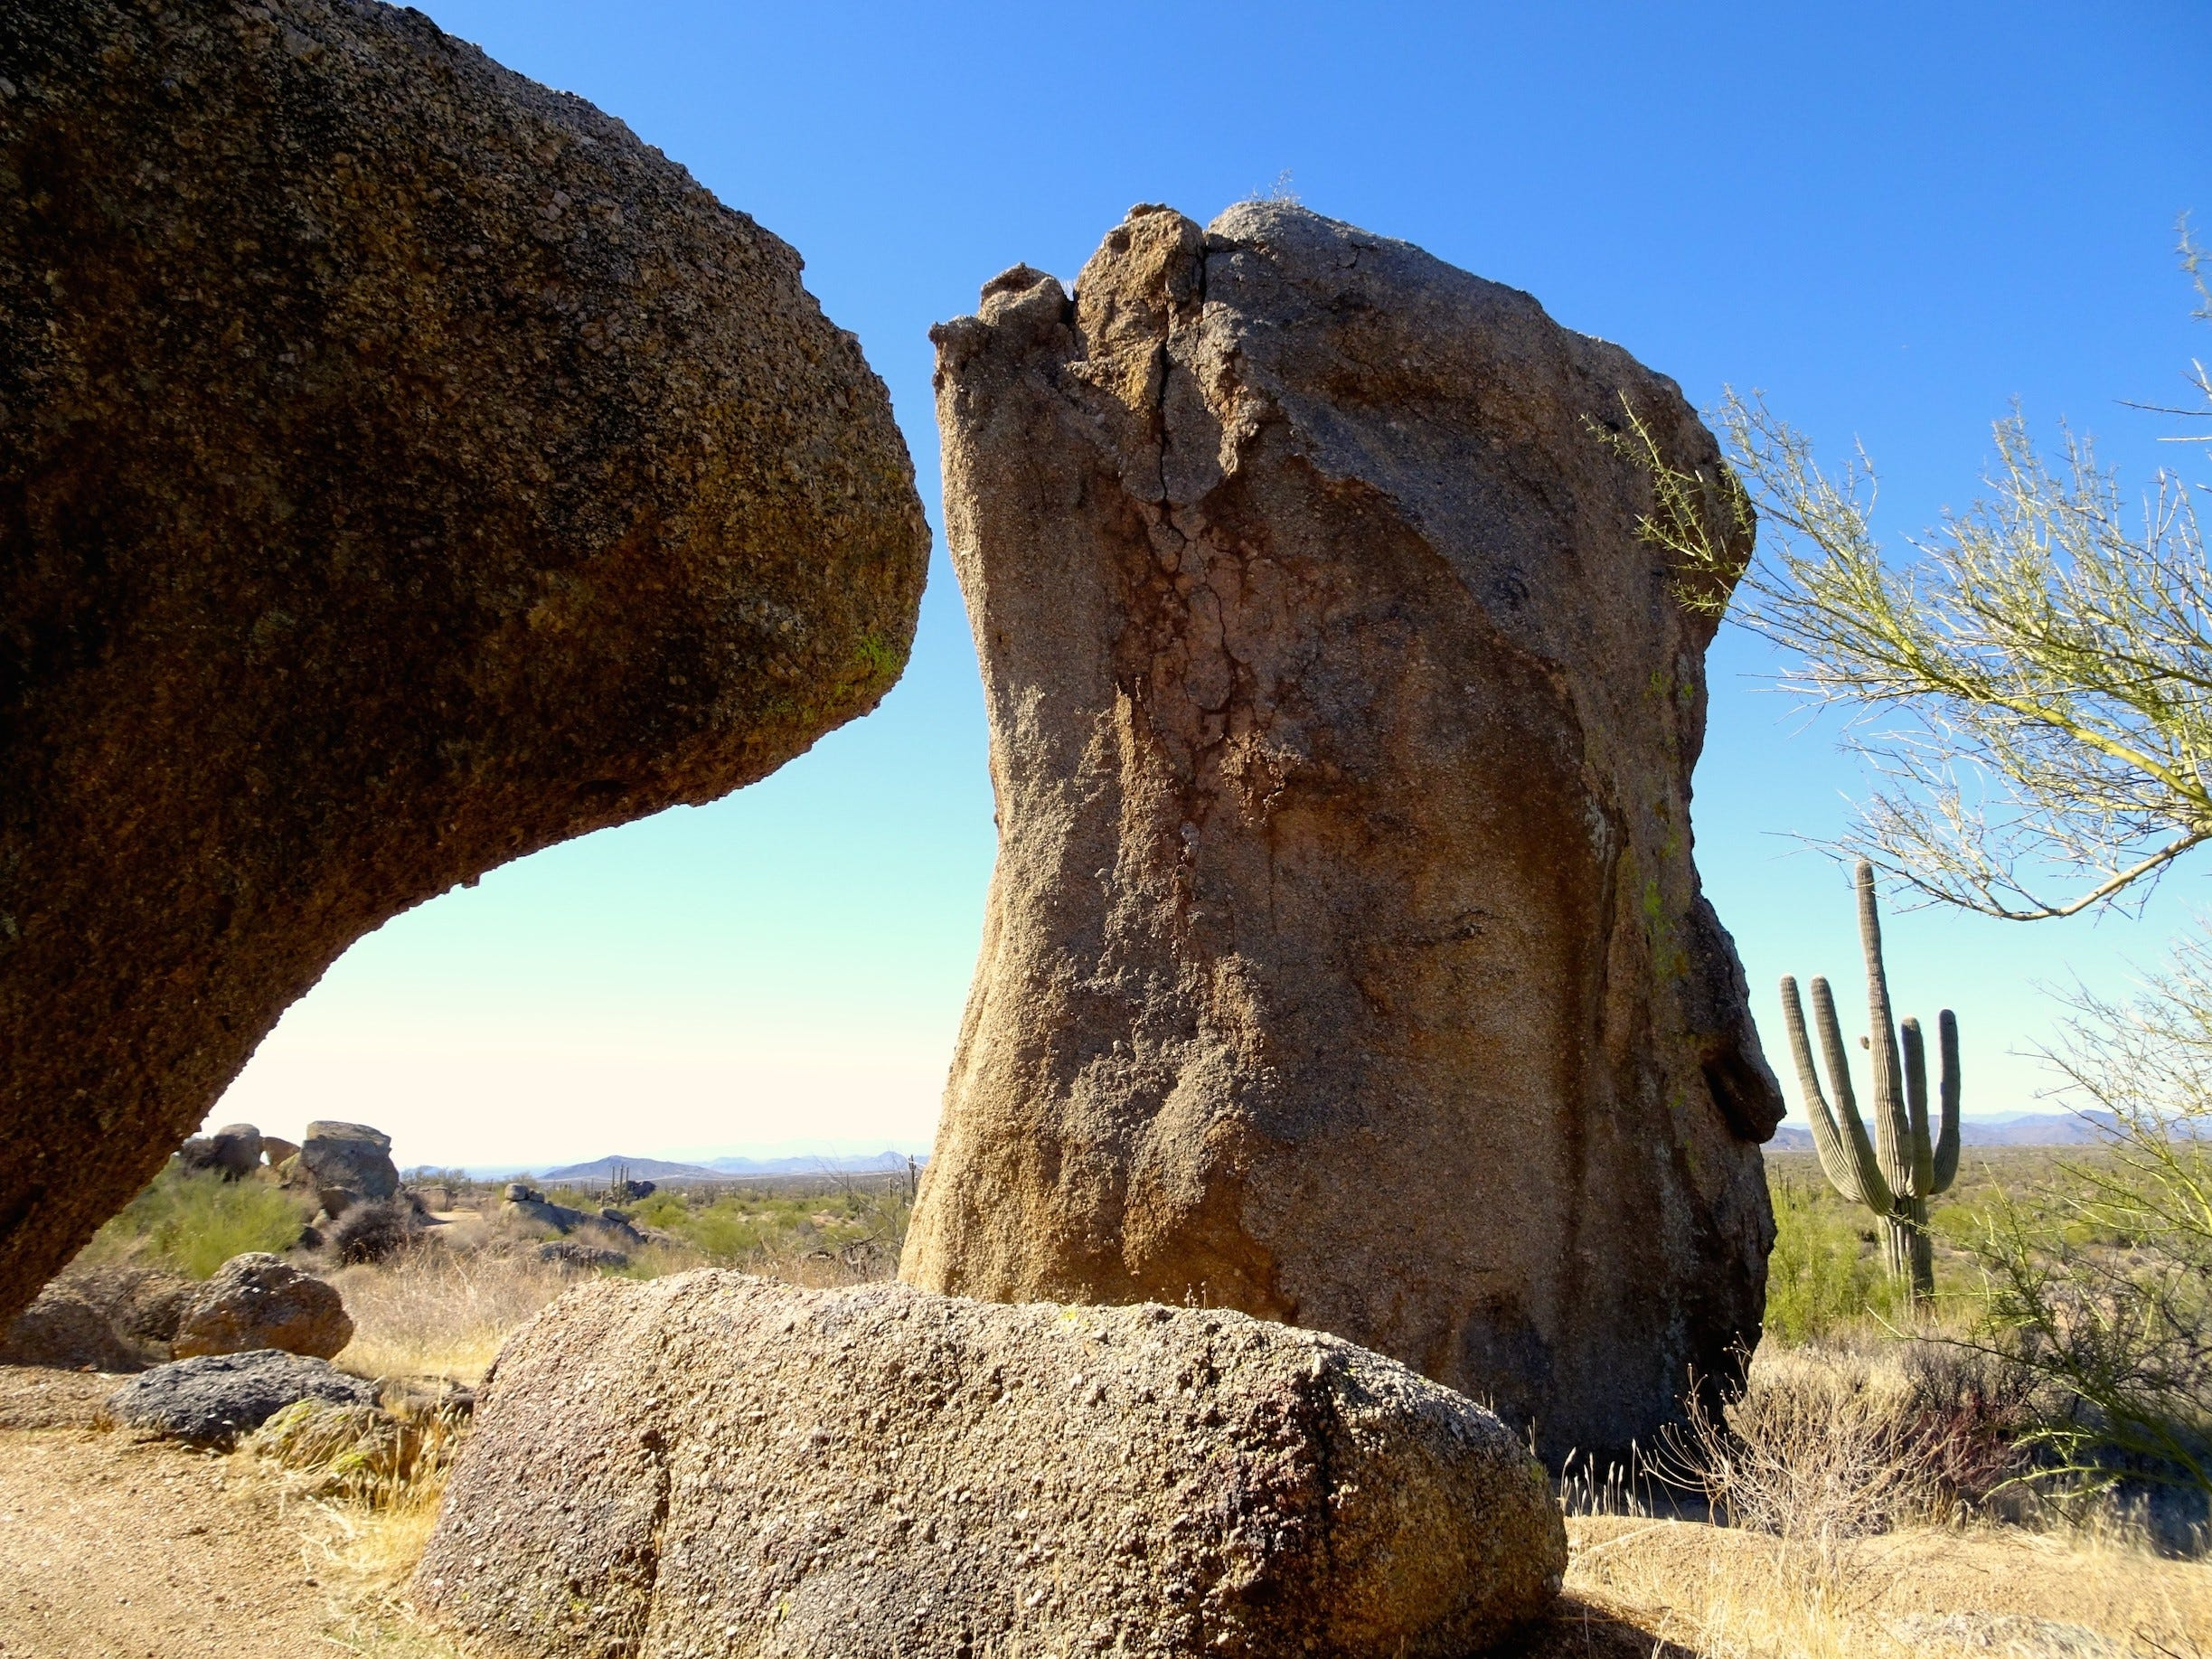 The North and South Diablo trails wind through boulder fields north of Cholla Mountain.